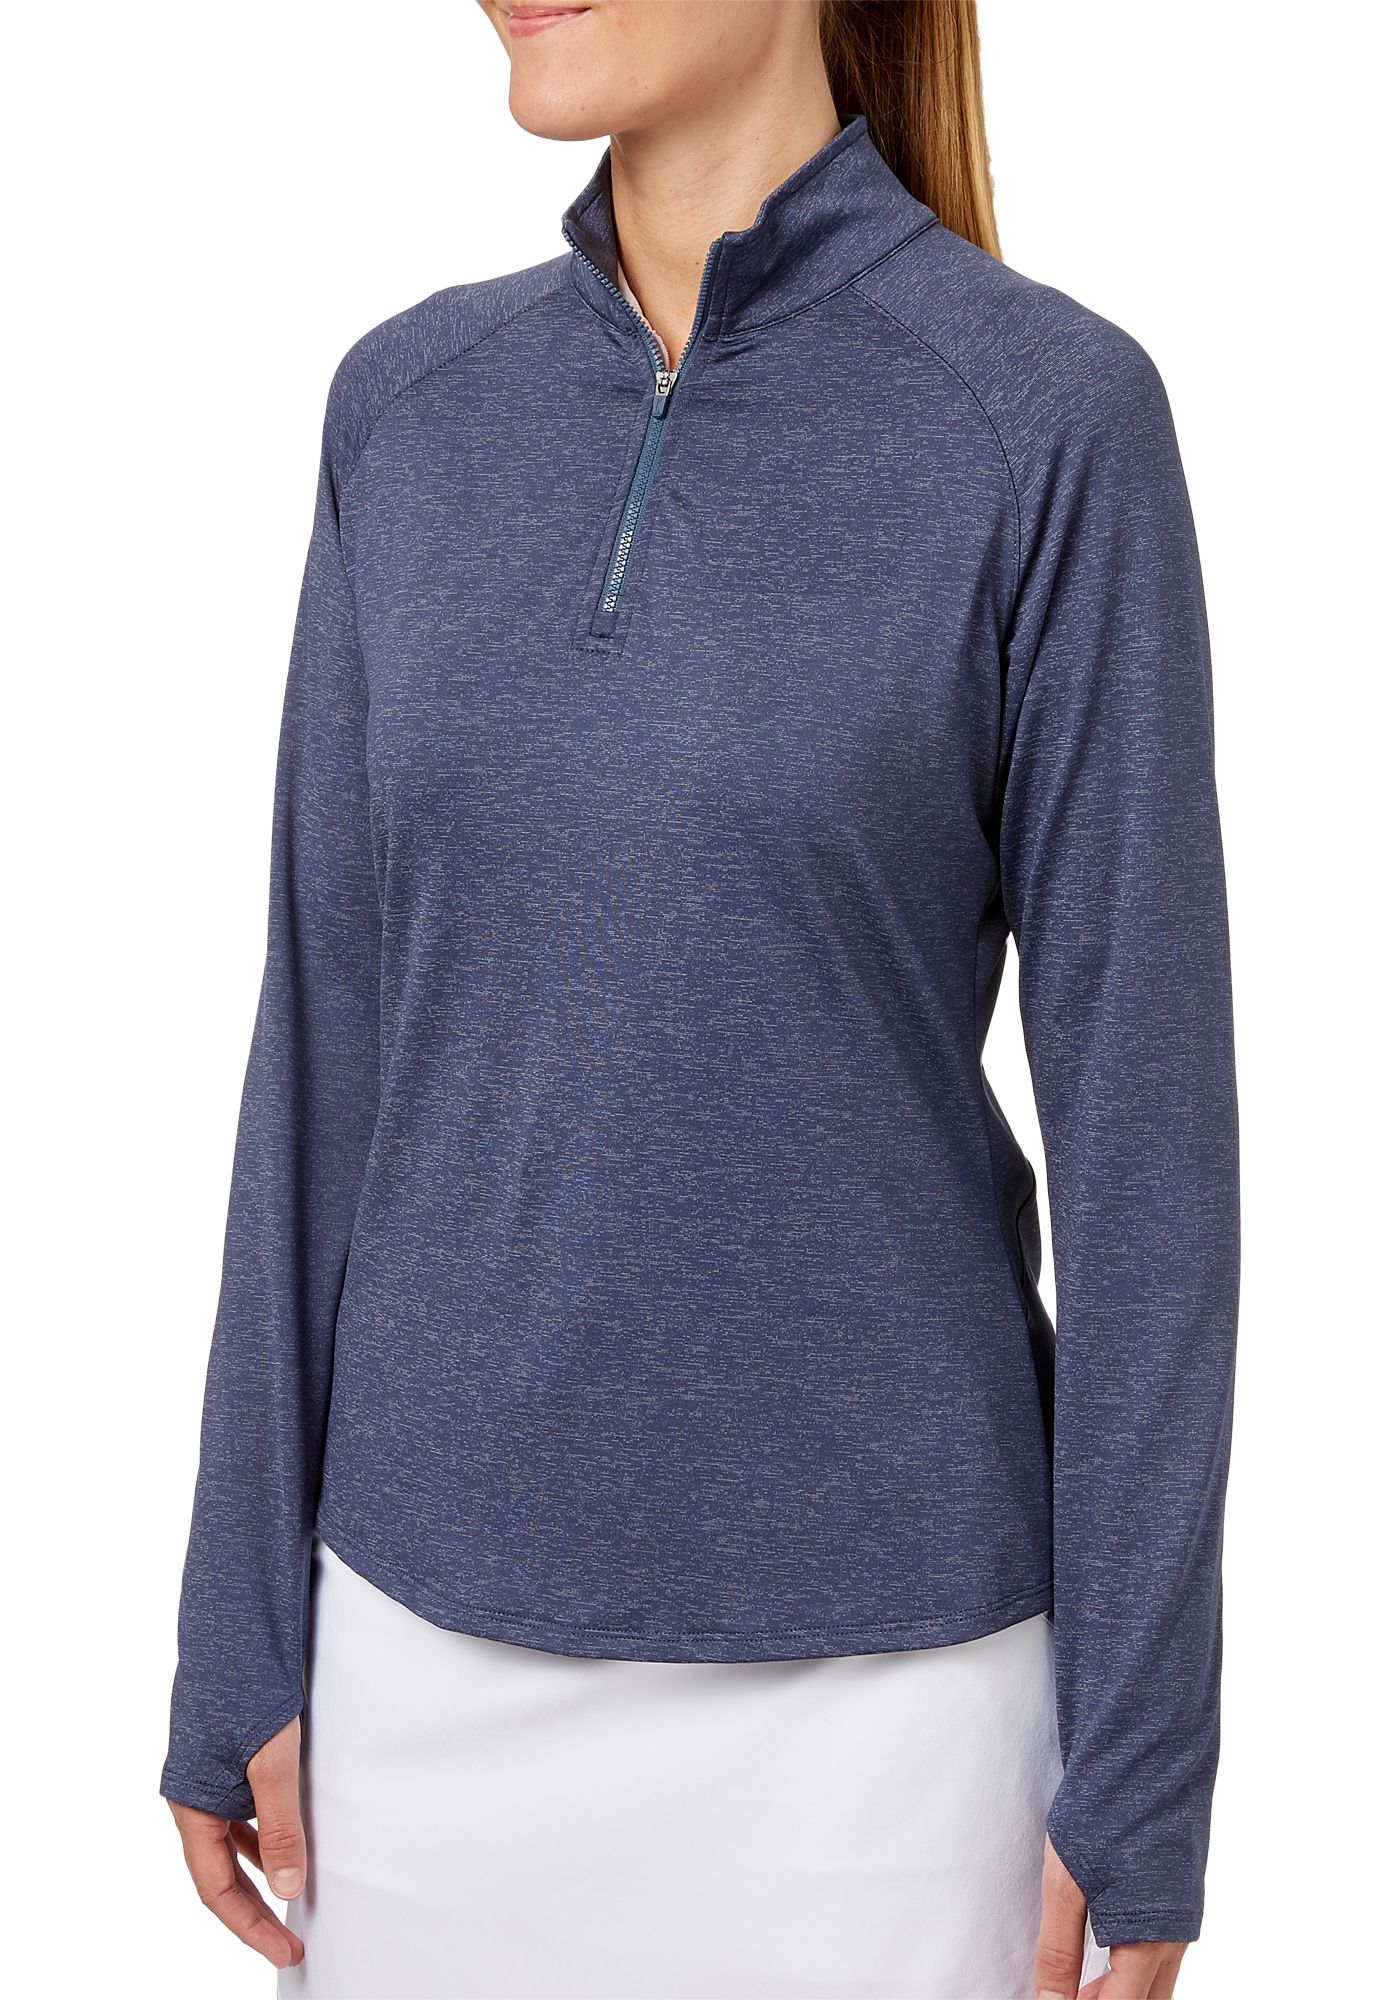 Slazenger Women's Heathered Quarter-Zip